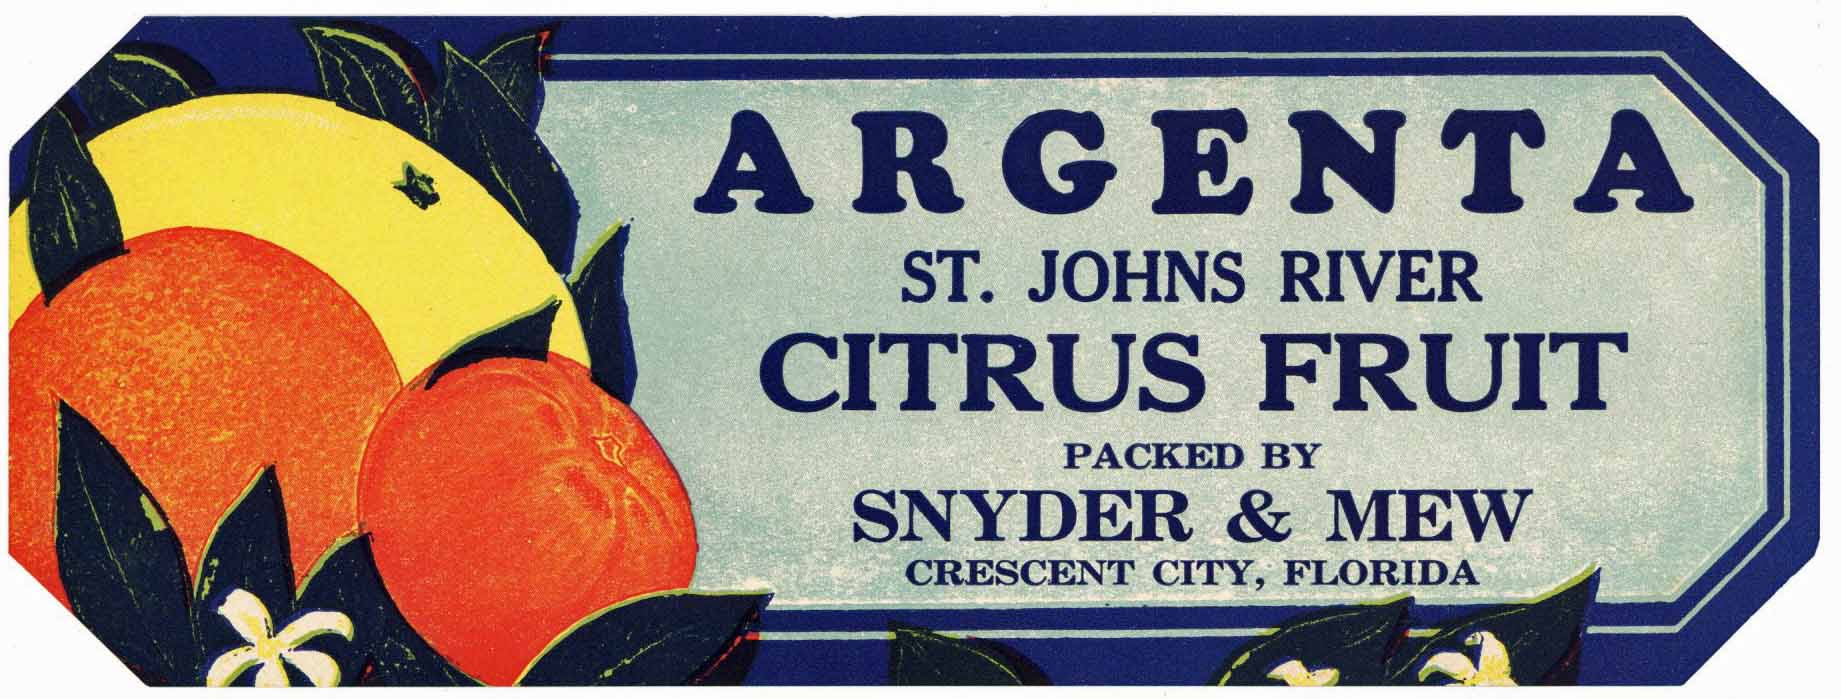 Argenta Brand Vintage Crescent City Florida Citrus Crate Label